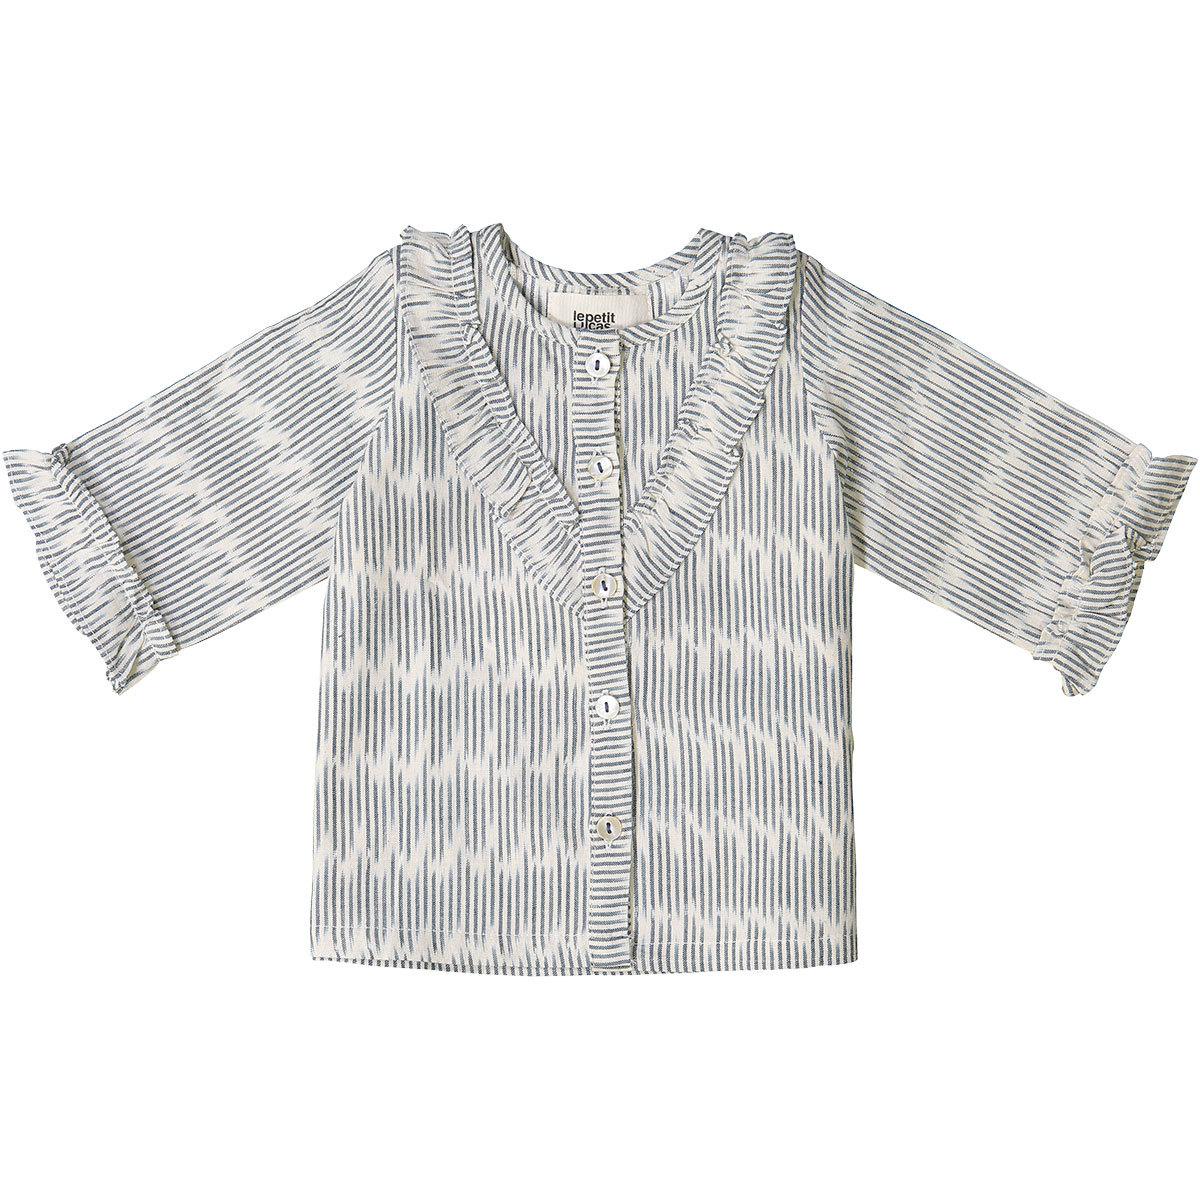 Hauts bébé Top Vanessa - Blue Cloud Ikat - 12/18 Mois Top Vanessa - Blue Cloud Ikat - 12/18 Mois